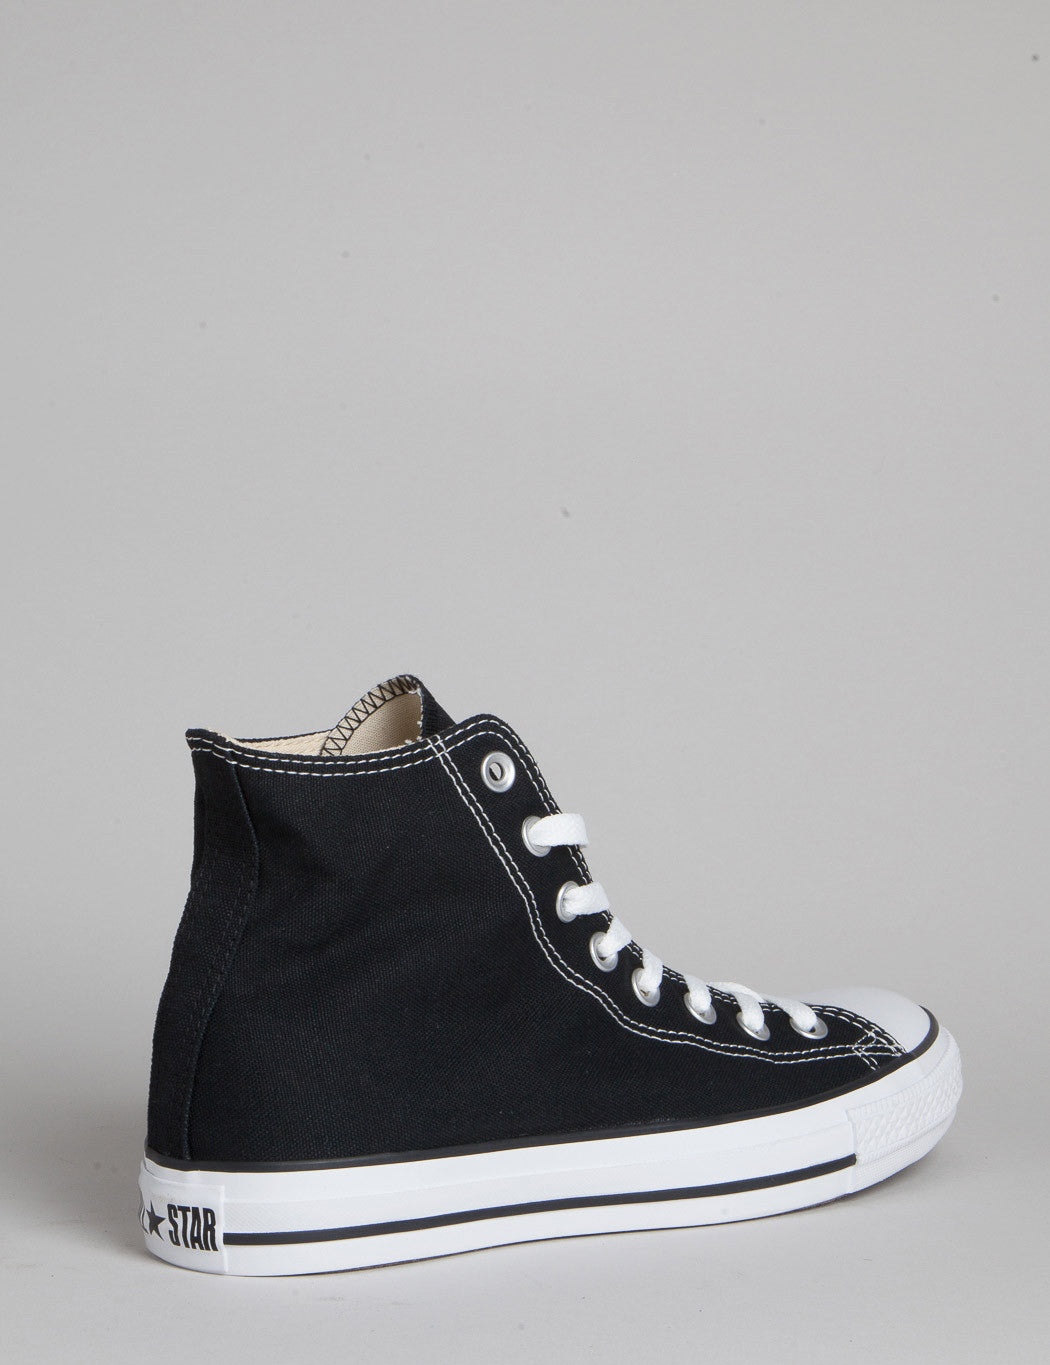 Converse All Star Hi - Black